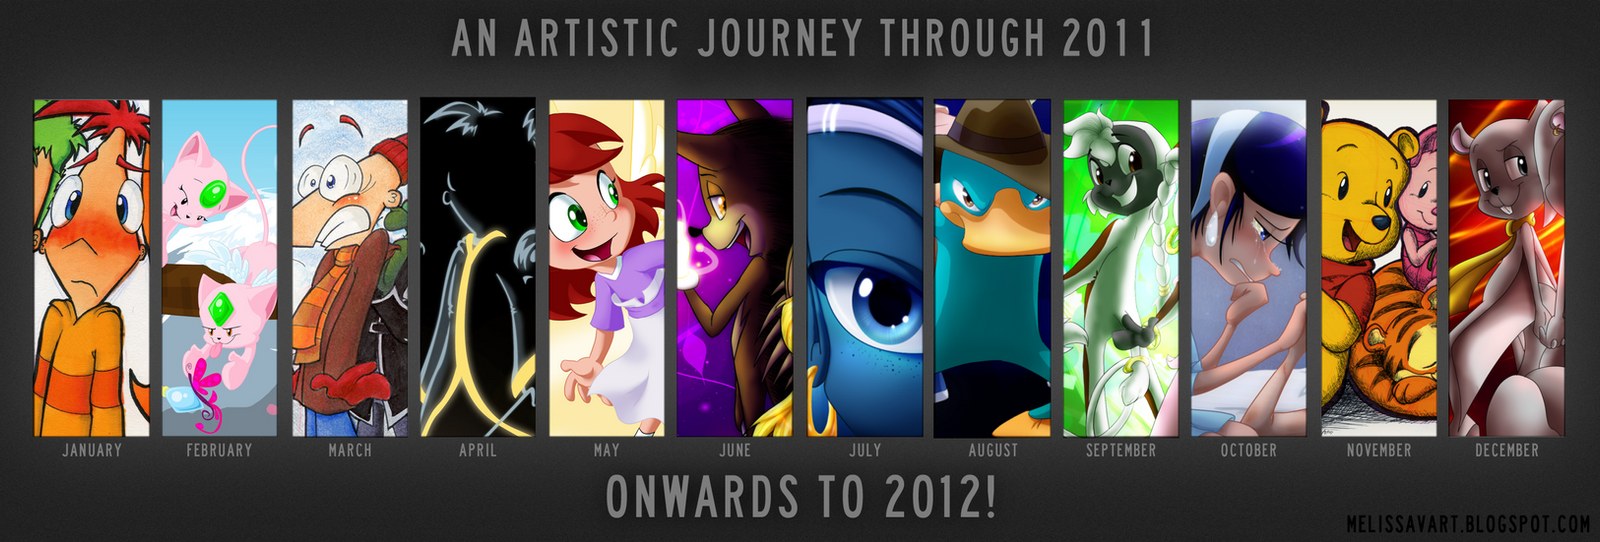 2011 in Art by KicsterAsh